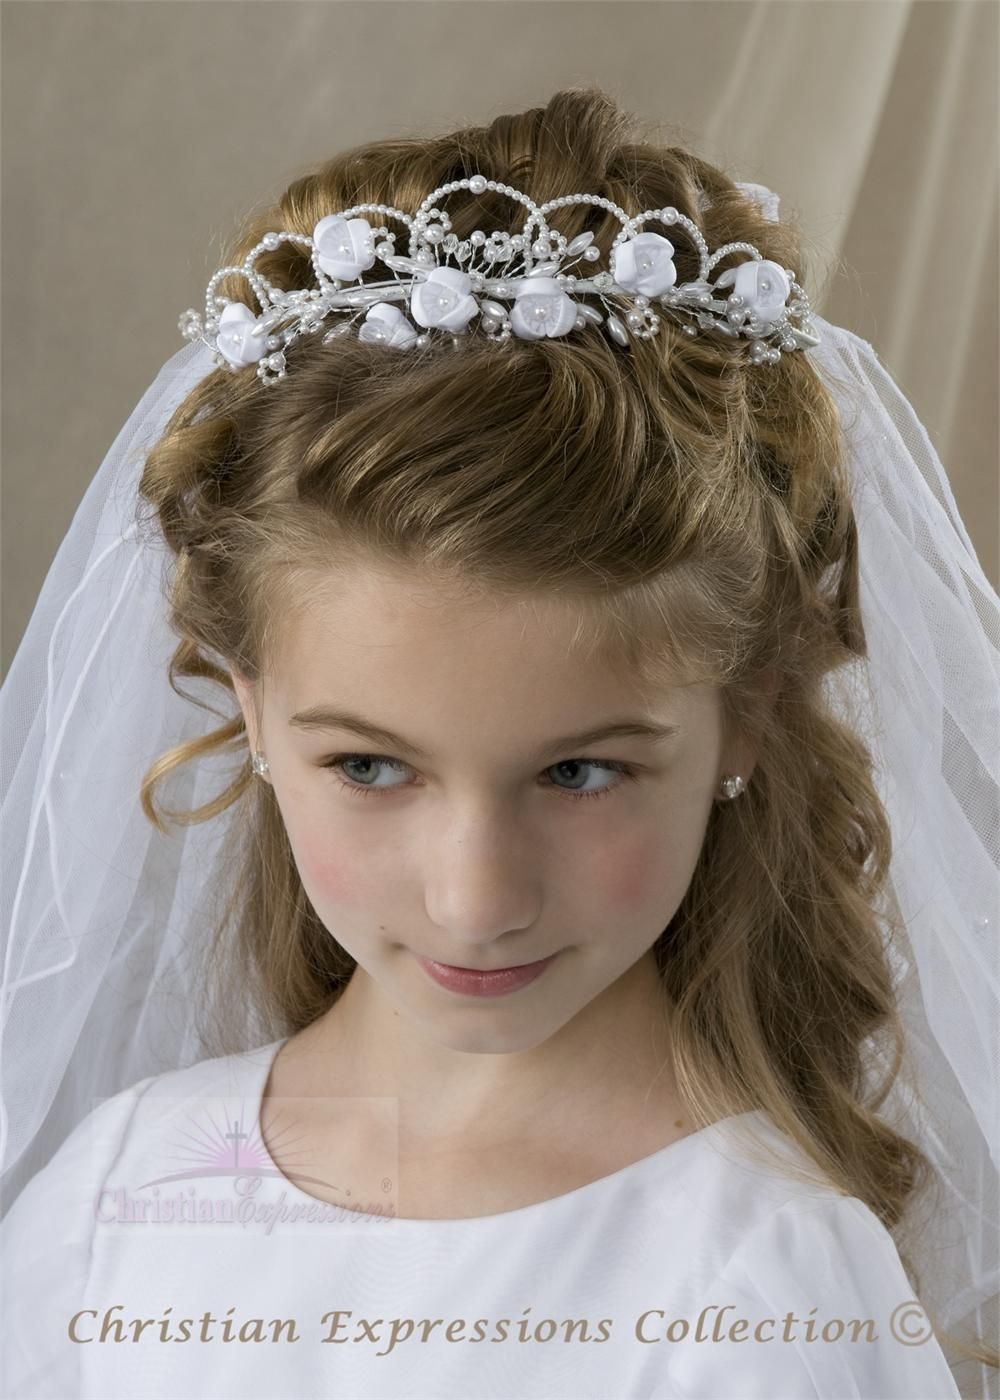 http://www.myfirstcommunion/prod_images_blowup/first-communion